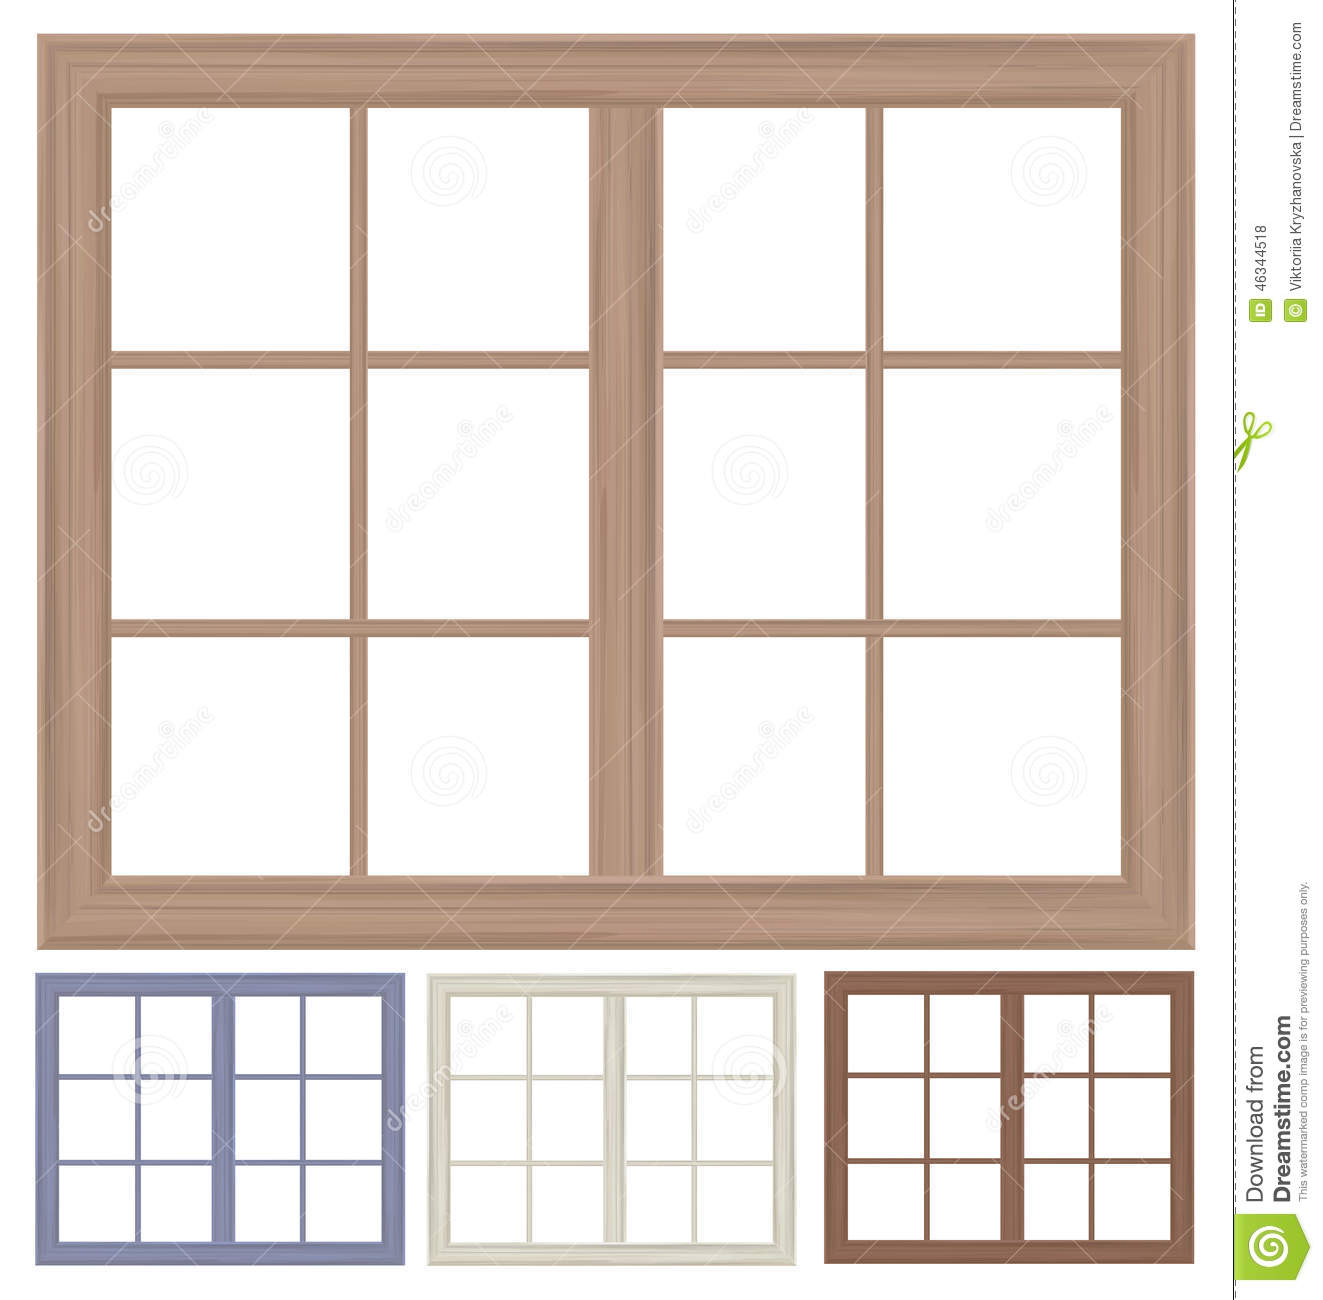 Window frame clipart the image kid has it for Cadre de fenetre